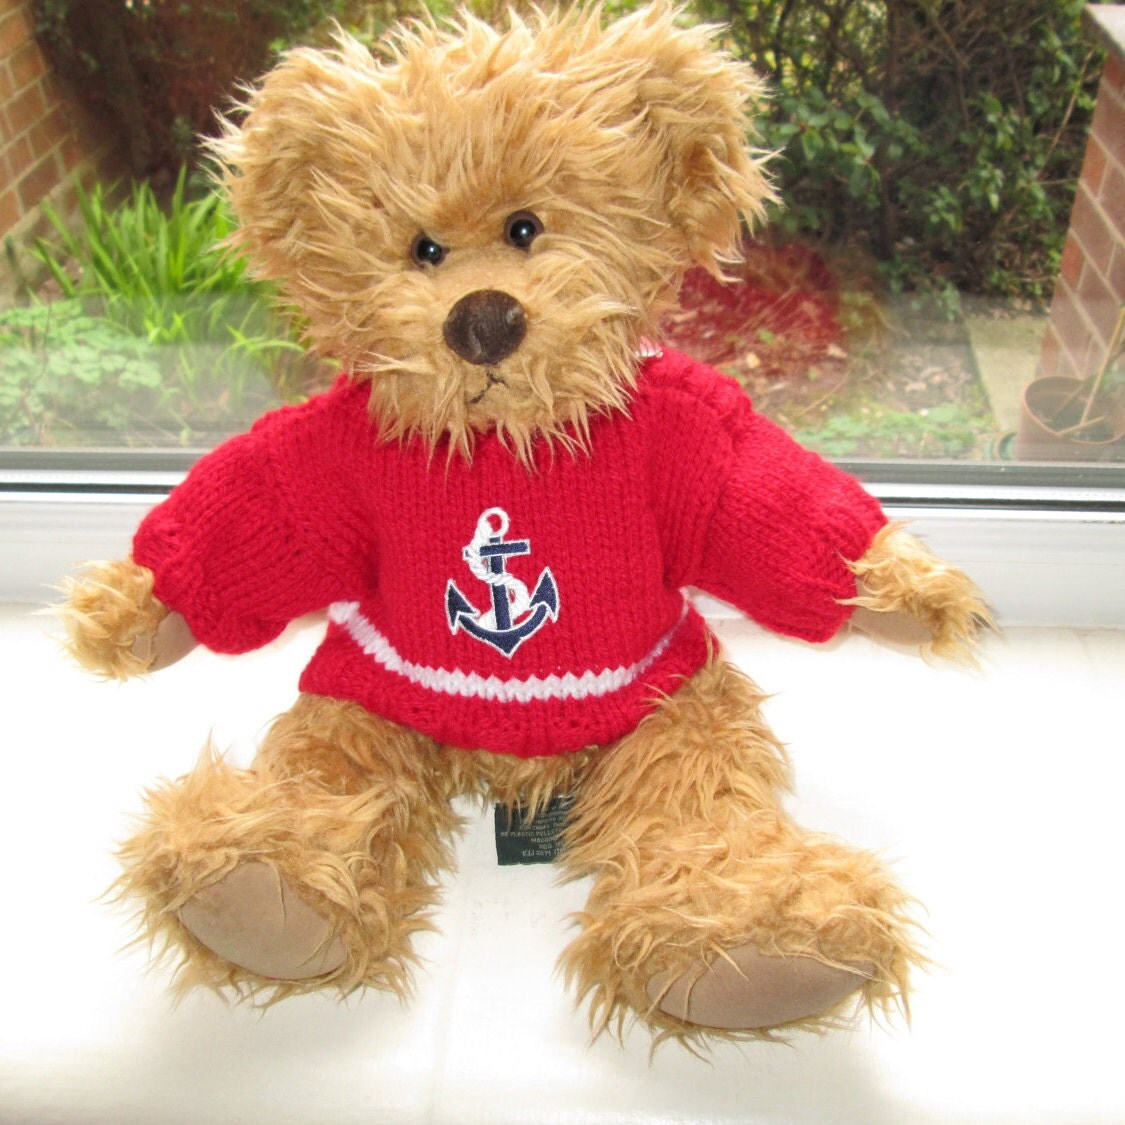 Teddy Bear Clothes Hand Knitted Red Sailor Nautical Anchor Motif SweaterJumper To Fit A 14 Inch Bear Clothes For Toys Ready To ShipPost